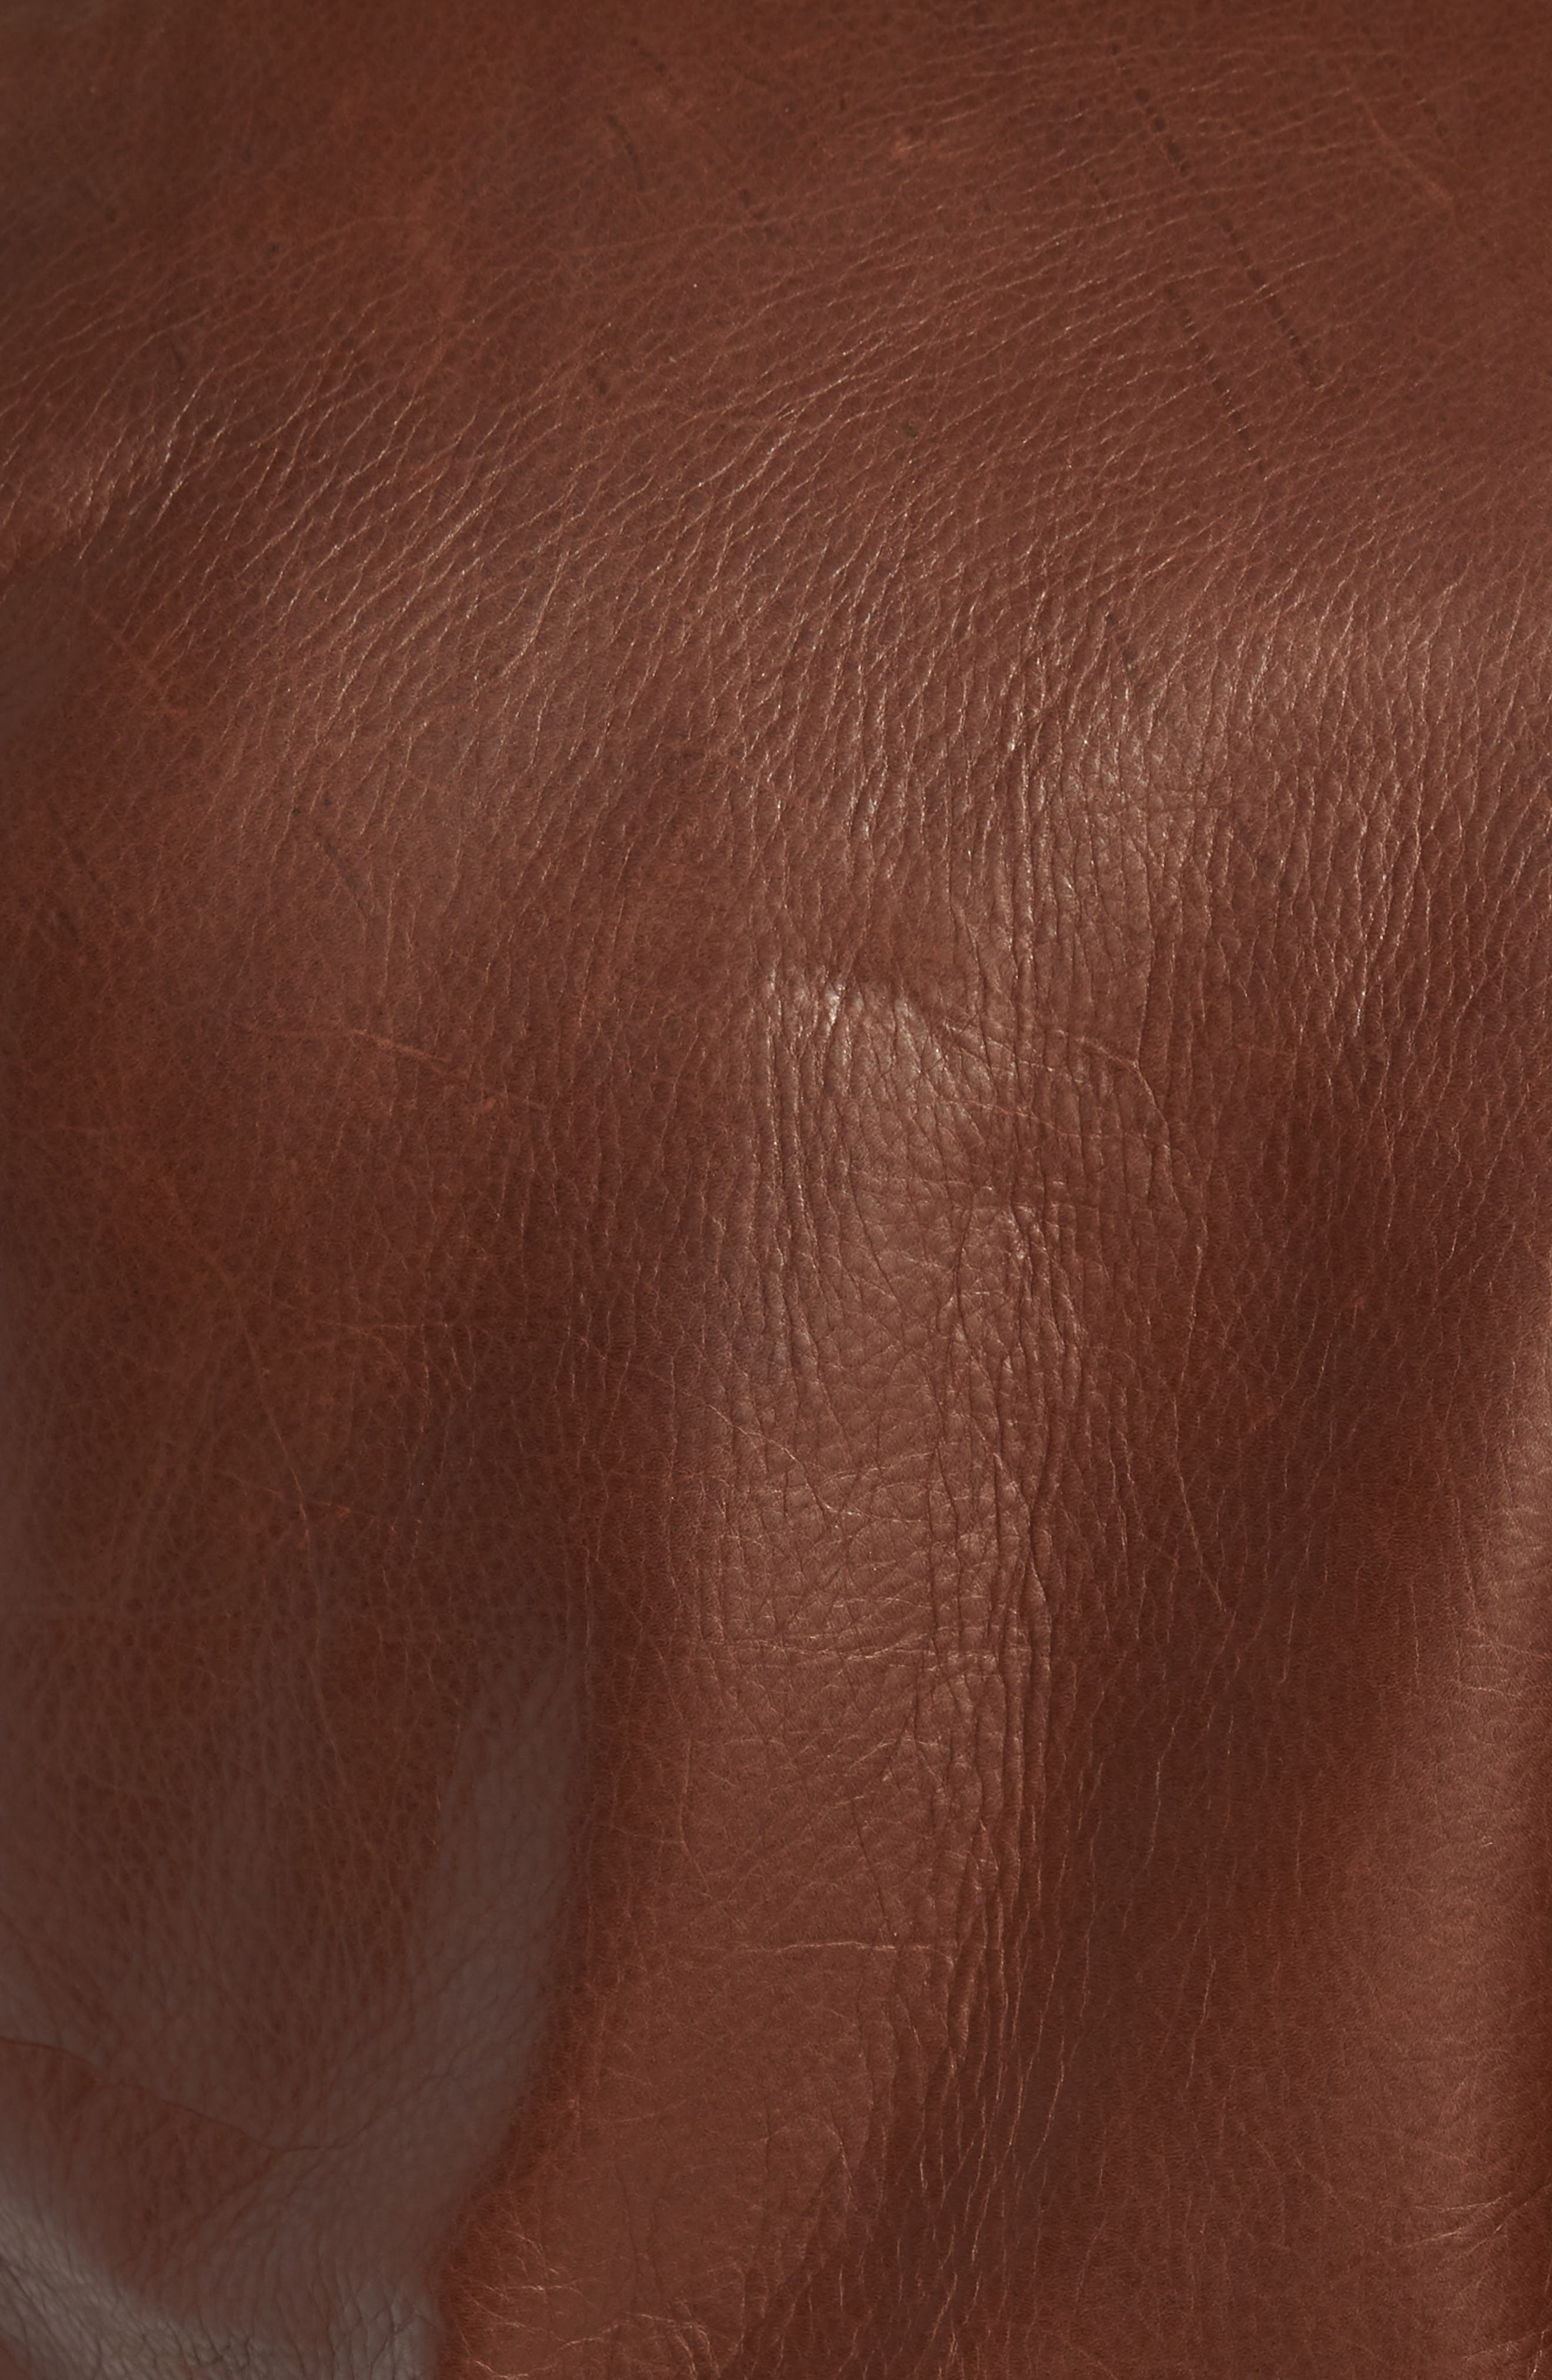 '50s Oil Tanned Cowhide Leather Moto Jacket,                             Alternate thumbnail 6, color,                             BROWN